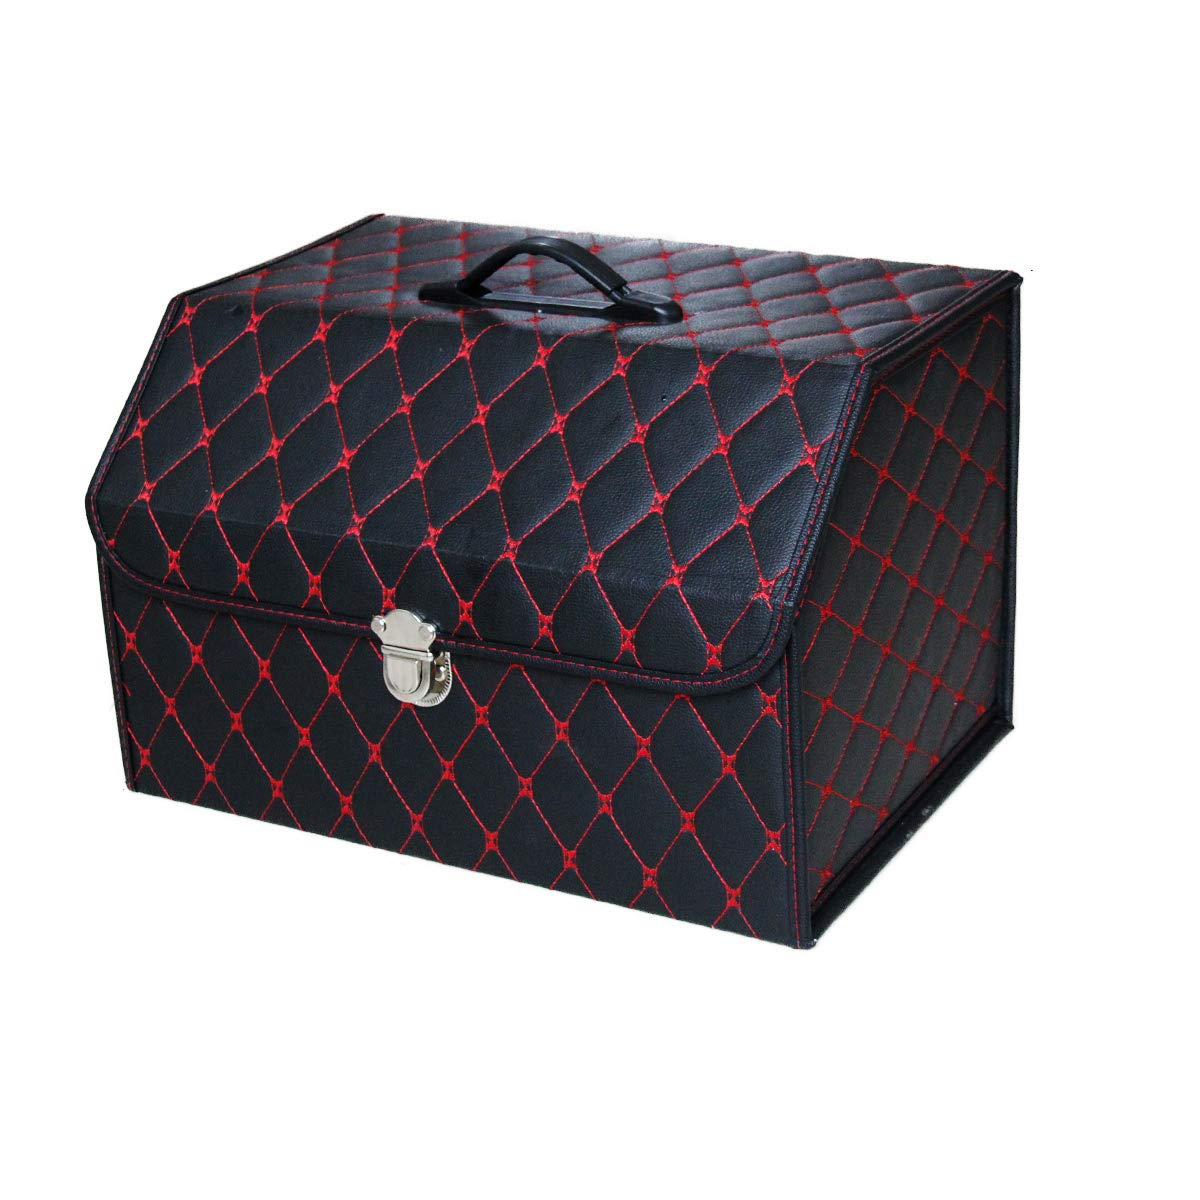 NINGIS Trunk Organizer Car Storage with Bottom Waterproof Heavy Duty Foldable Suit Any in-Vehicle Organization Needs Black-Red